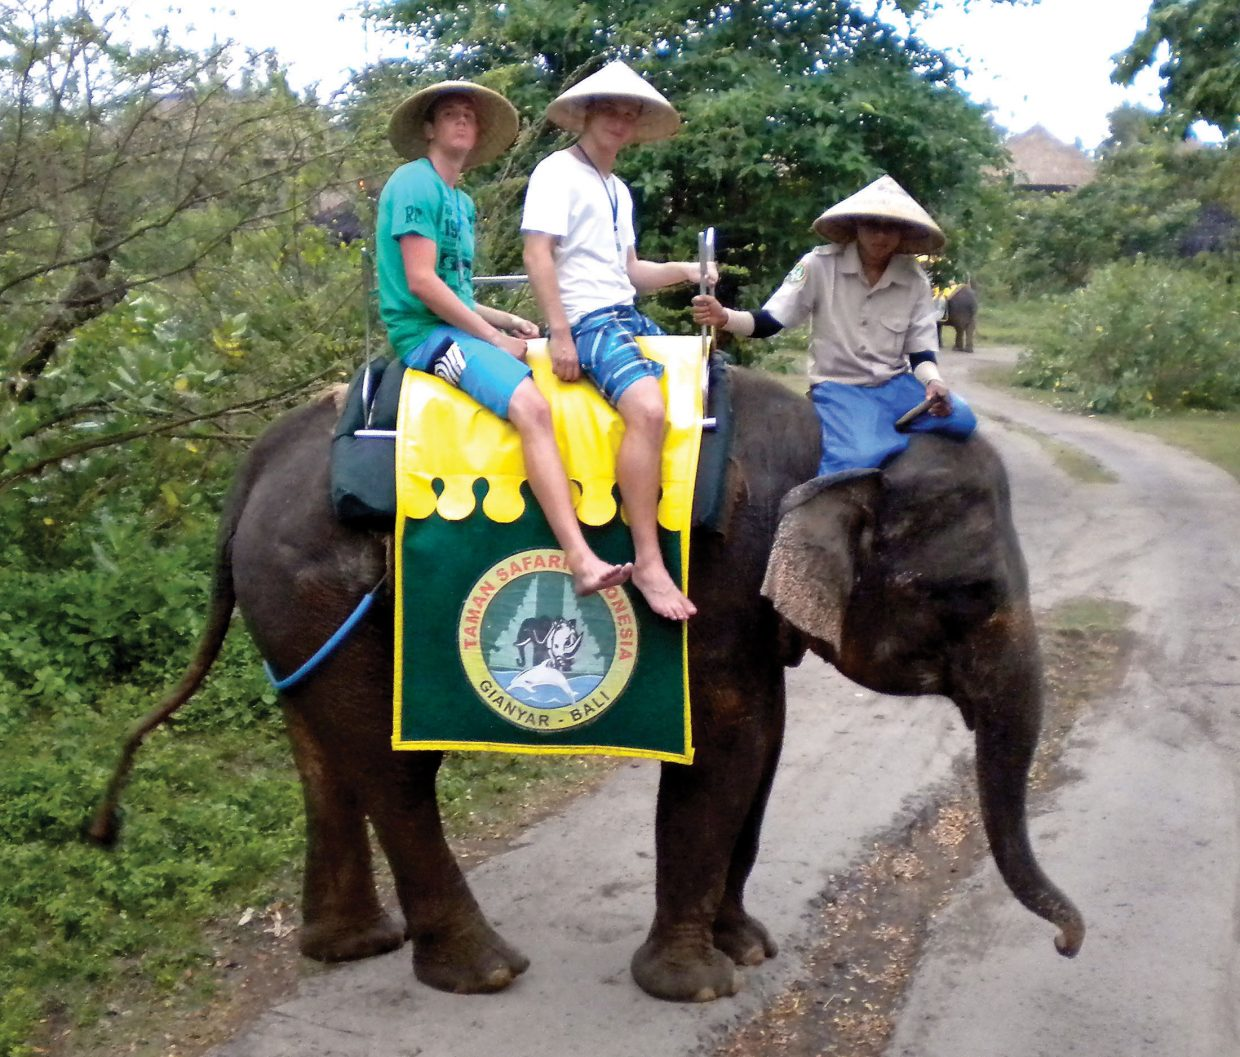 Kaleb Mckey, left, rides atop an elephant during a spring break trip to Bali, Indonesia. He and his roommate, Didrik, middle, were on break from their study abroad program in Adelaide, Australia